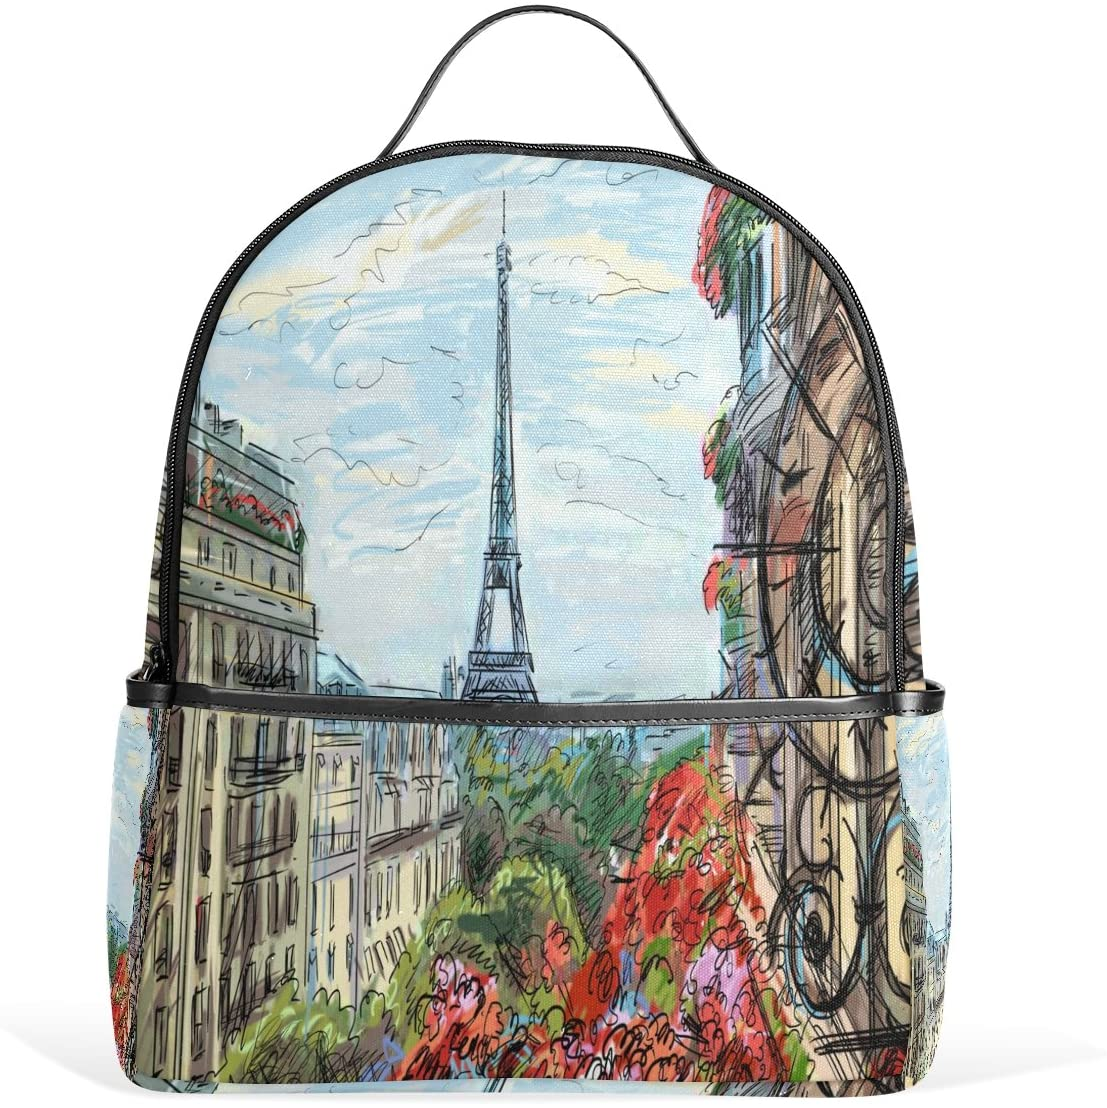 Use4 Street Paris Eiffel Tower Polyester Backpack School Travel Bag